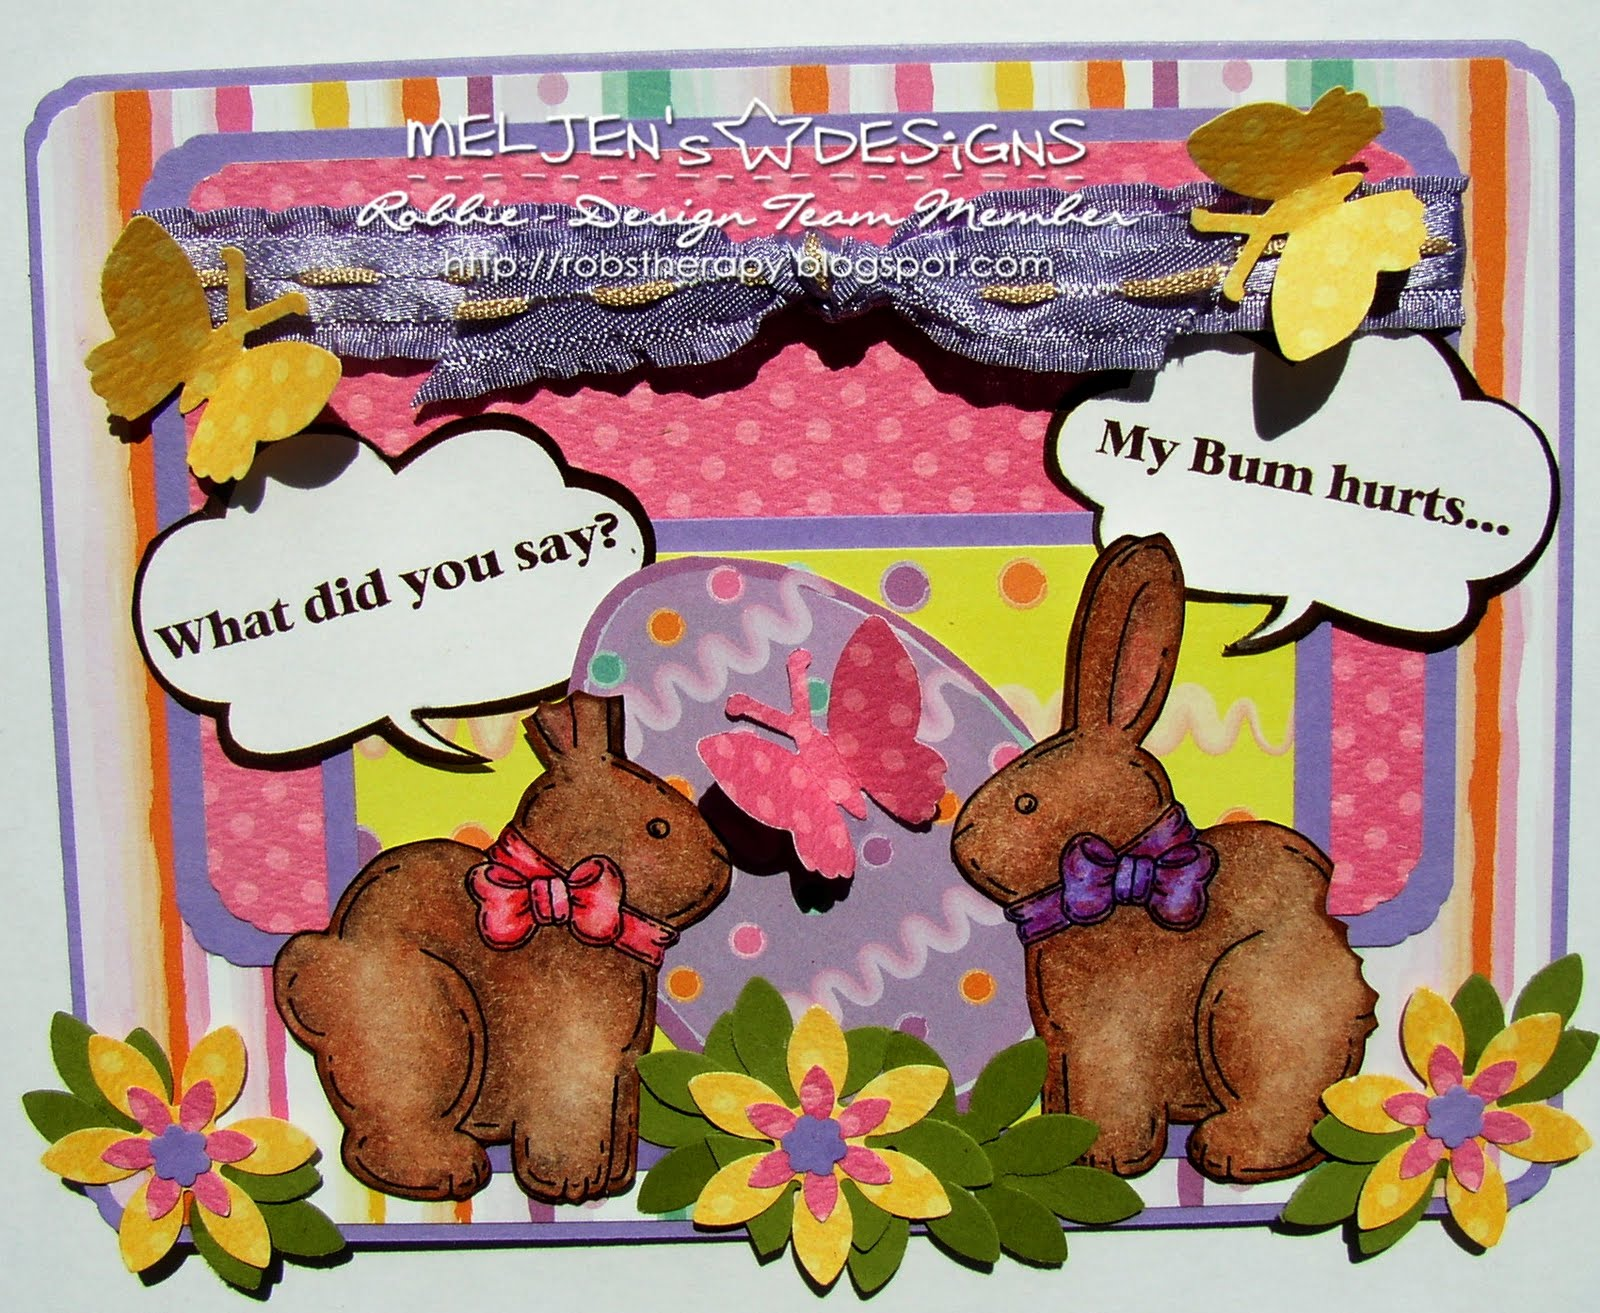 easter-bunny-butt-hurts